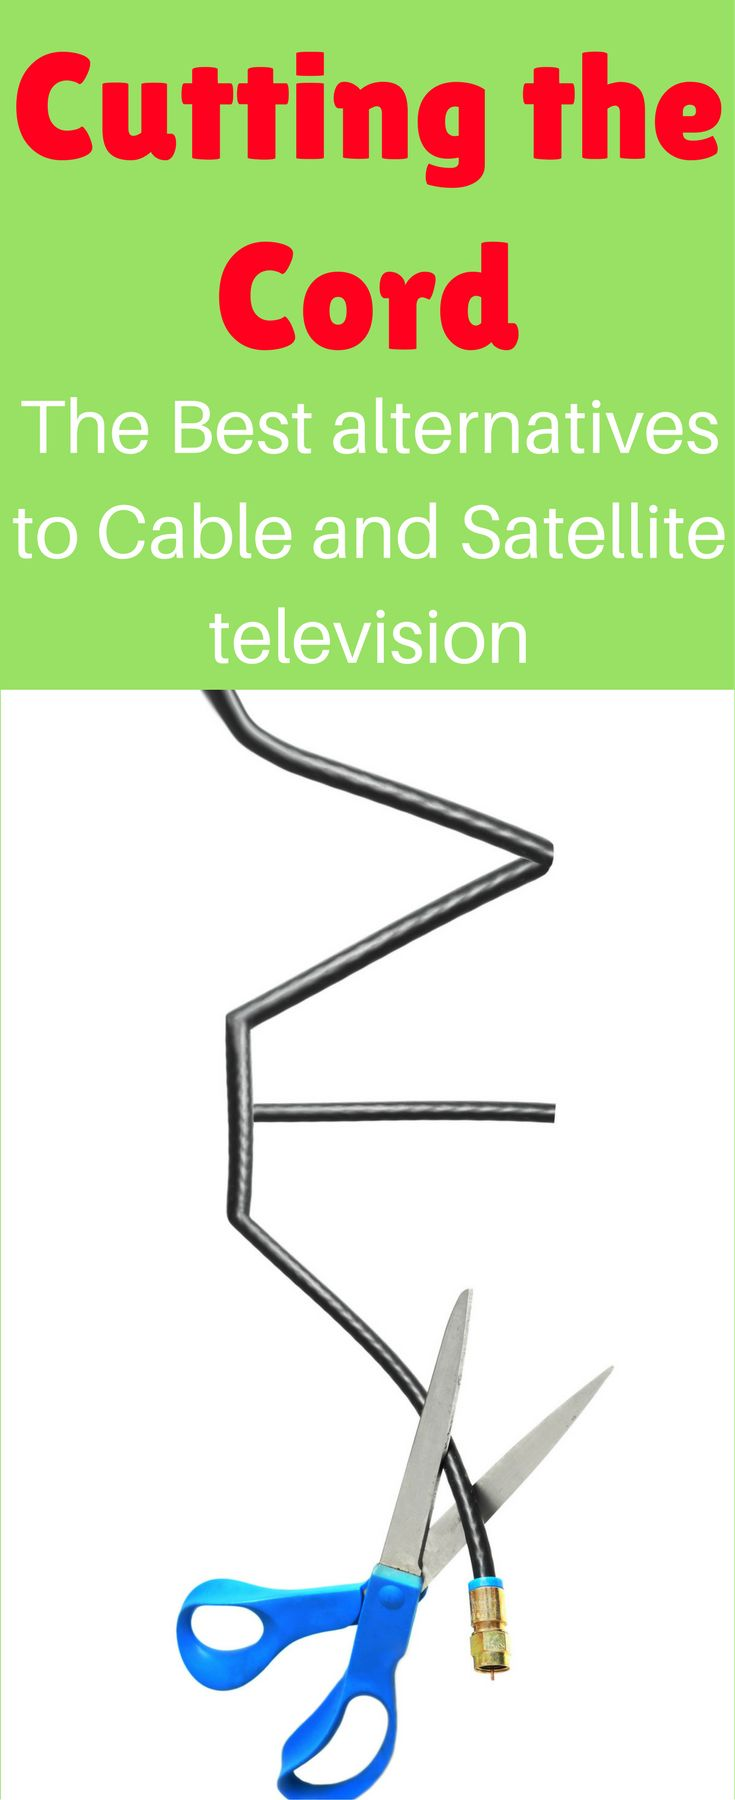 The Best Alternatives to Cable and Satellite Television / Saving money / cable television / cable tv / roku / tv / best tv